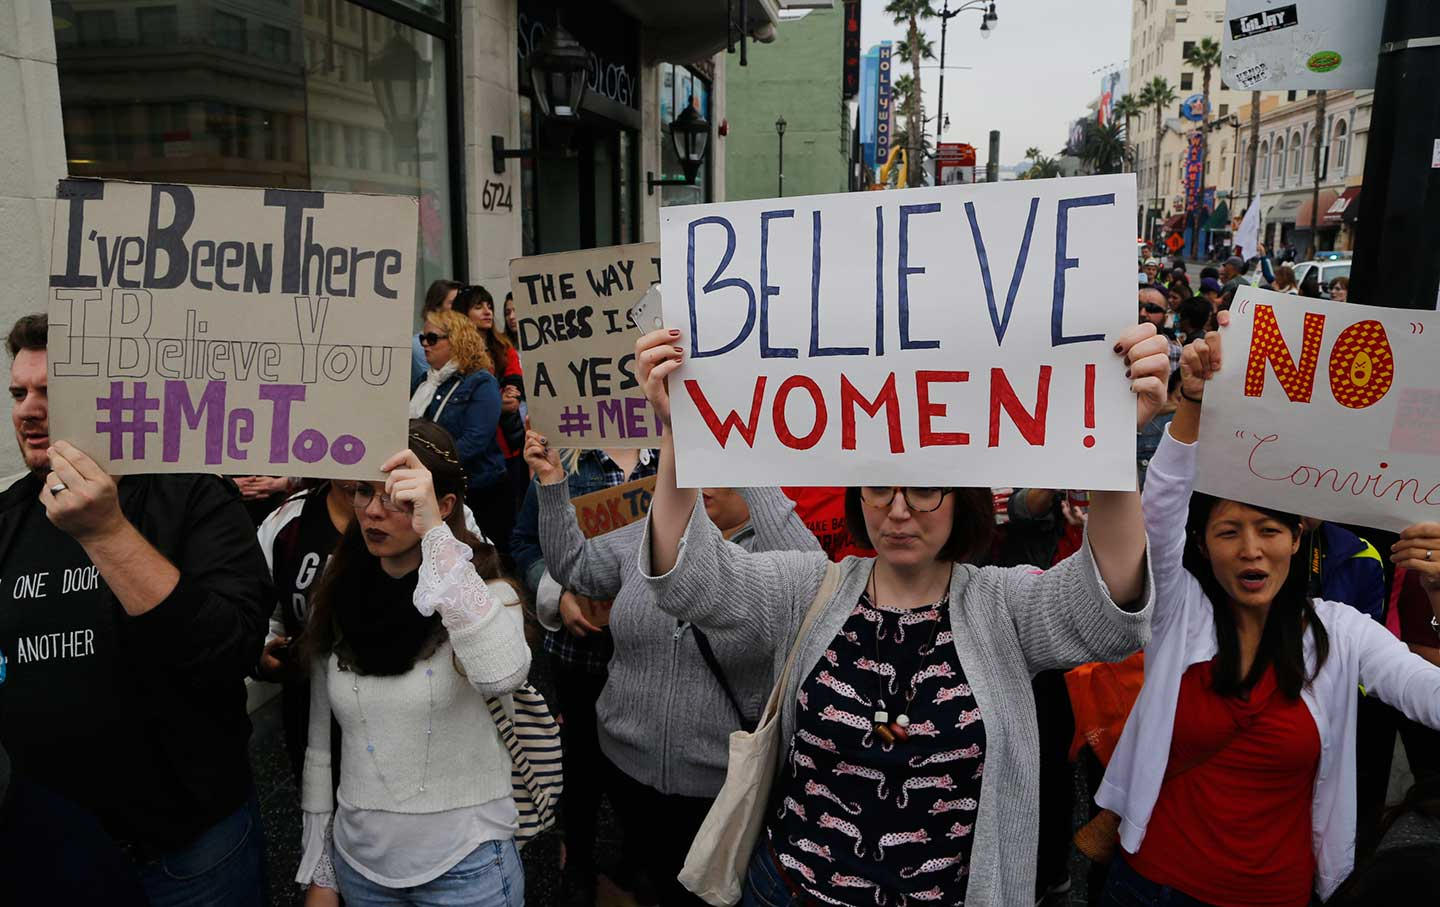 https://www.thenation.com/wp-content/uploads/2017/11/believe-women-march-ap-img.jpg?scale=896&compress=80